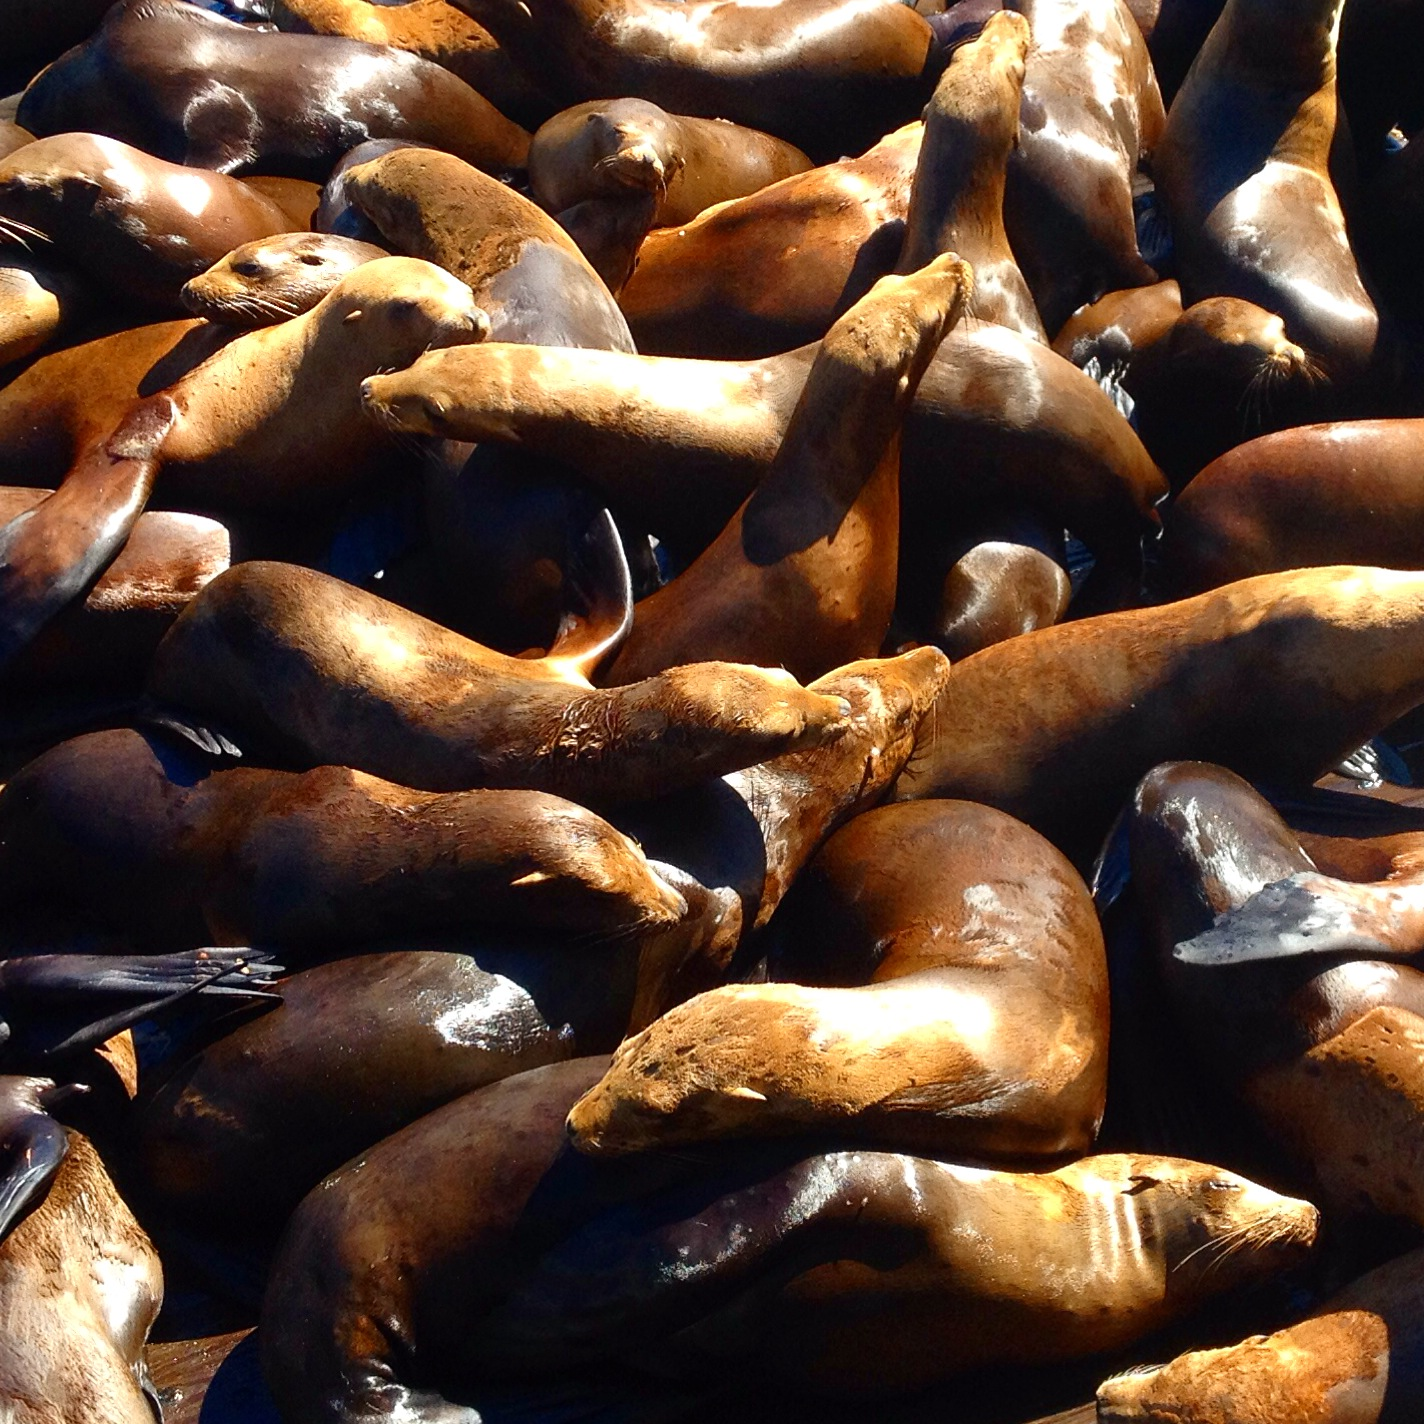 California Sea Lions, Monterey